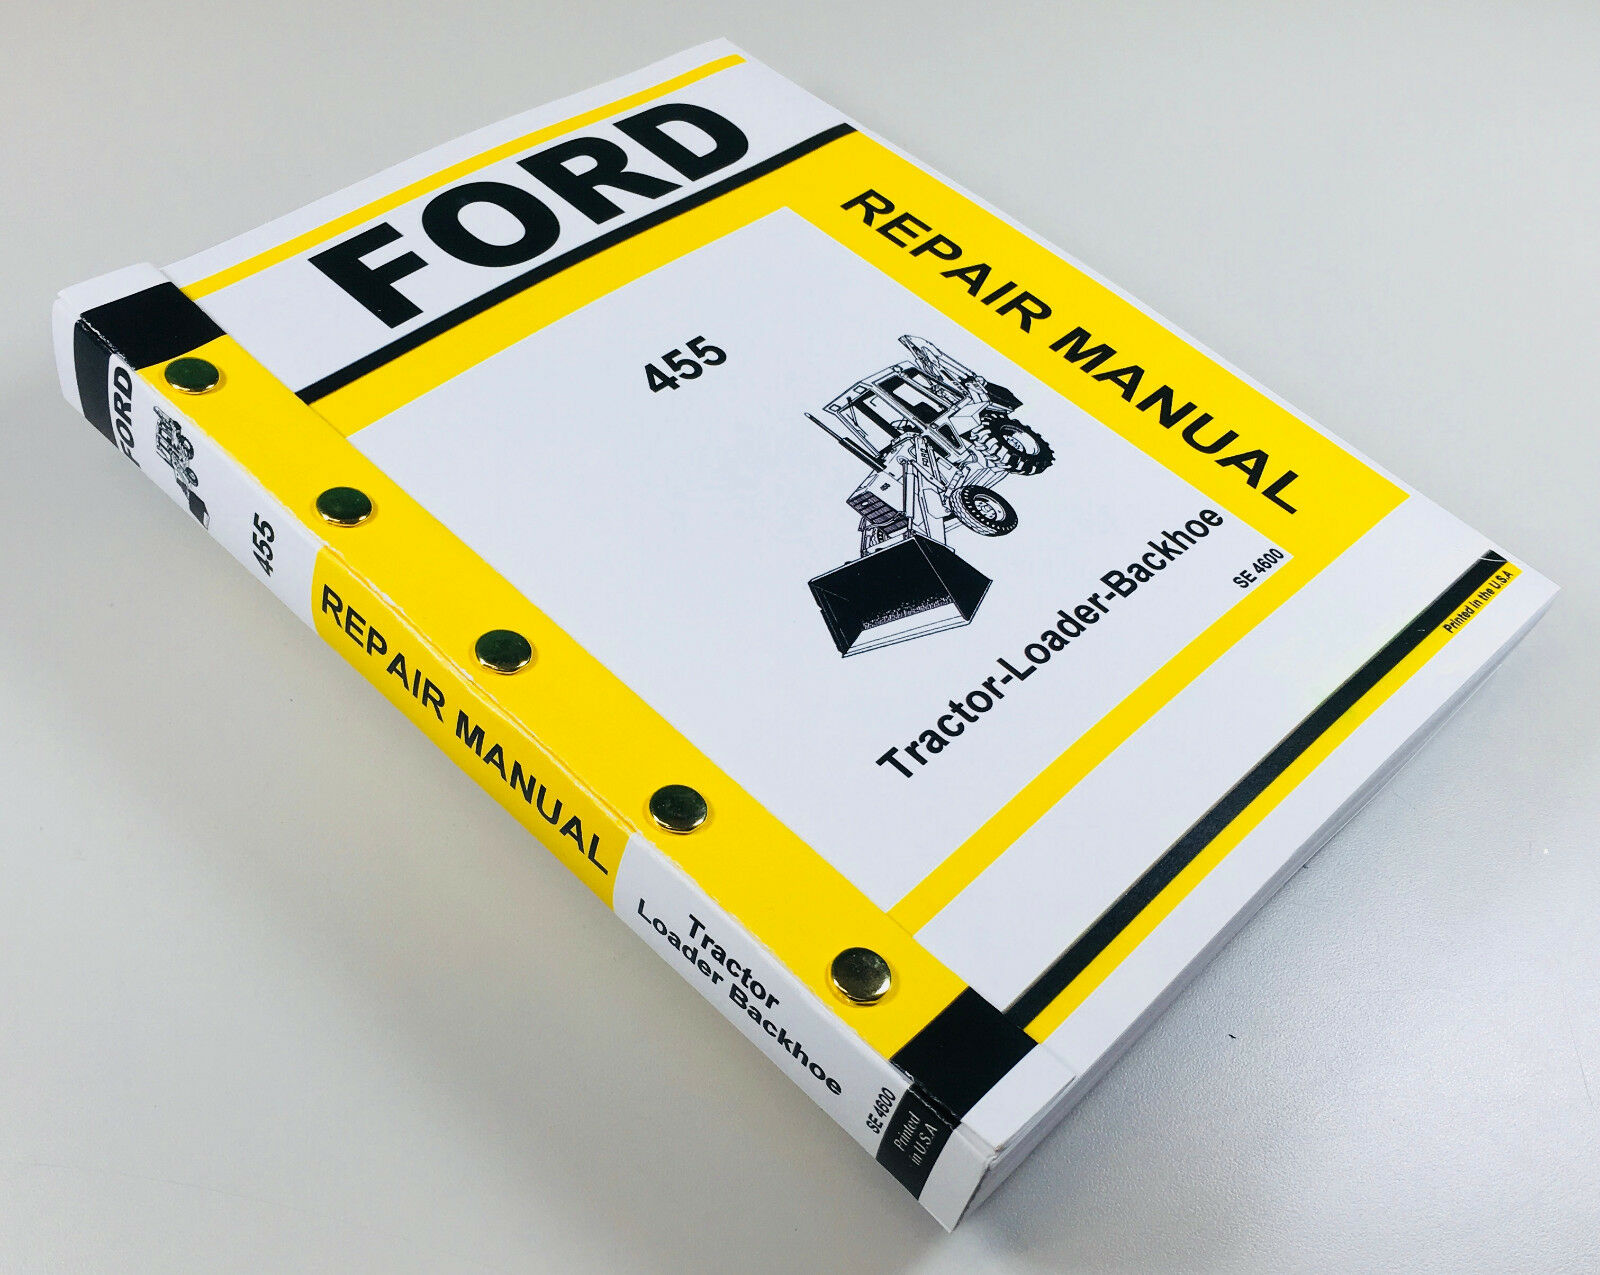 Ford 455 Tractor Loader Backhoe Service Repair Manual Technical Shop Book 1  of 11FREE Shipping ...